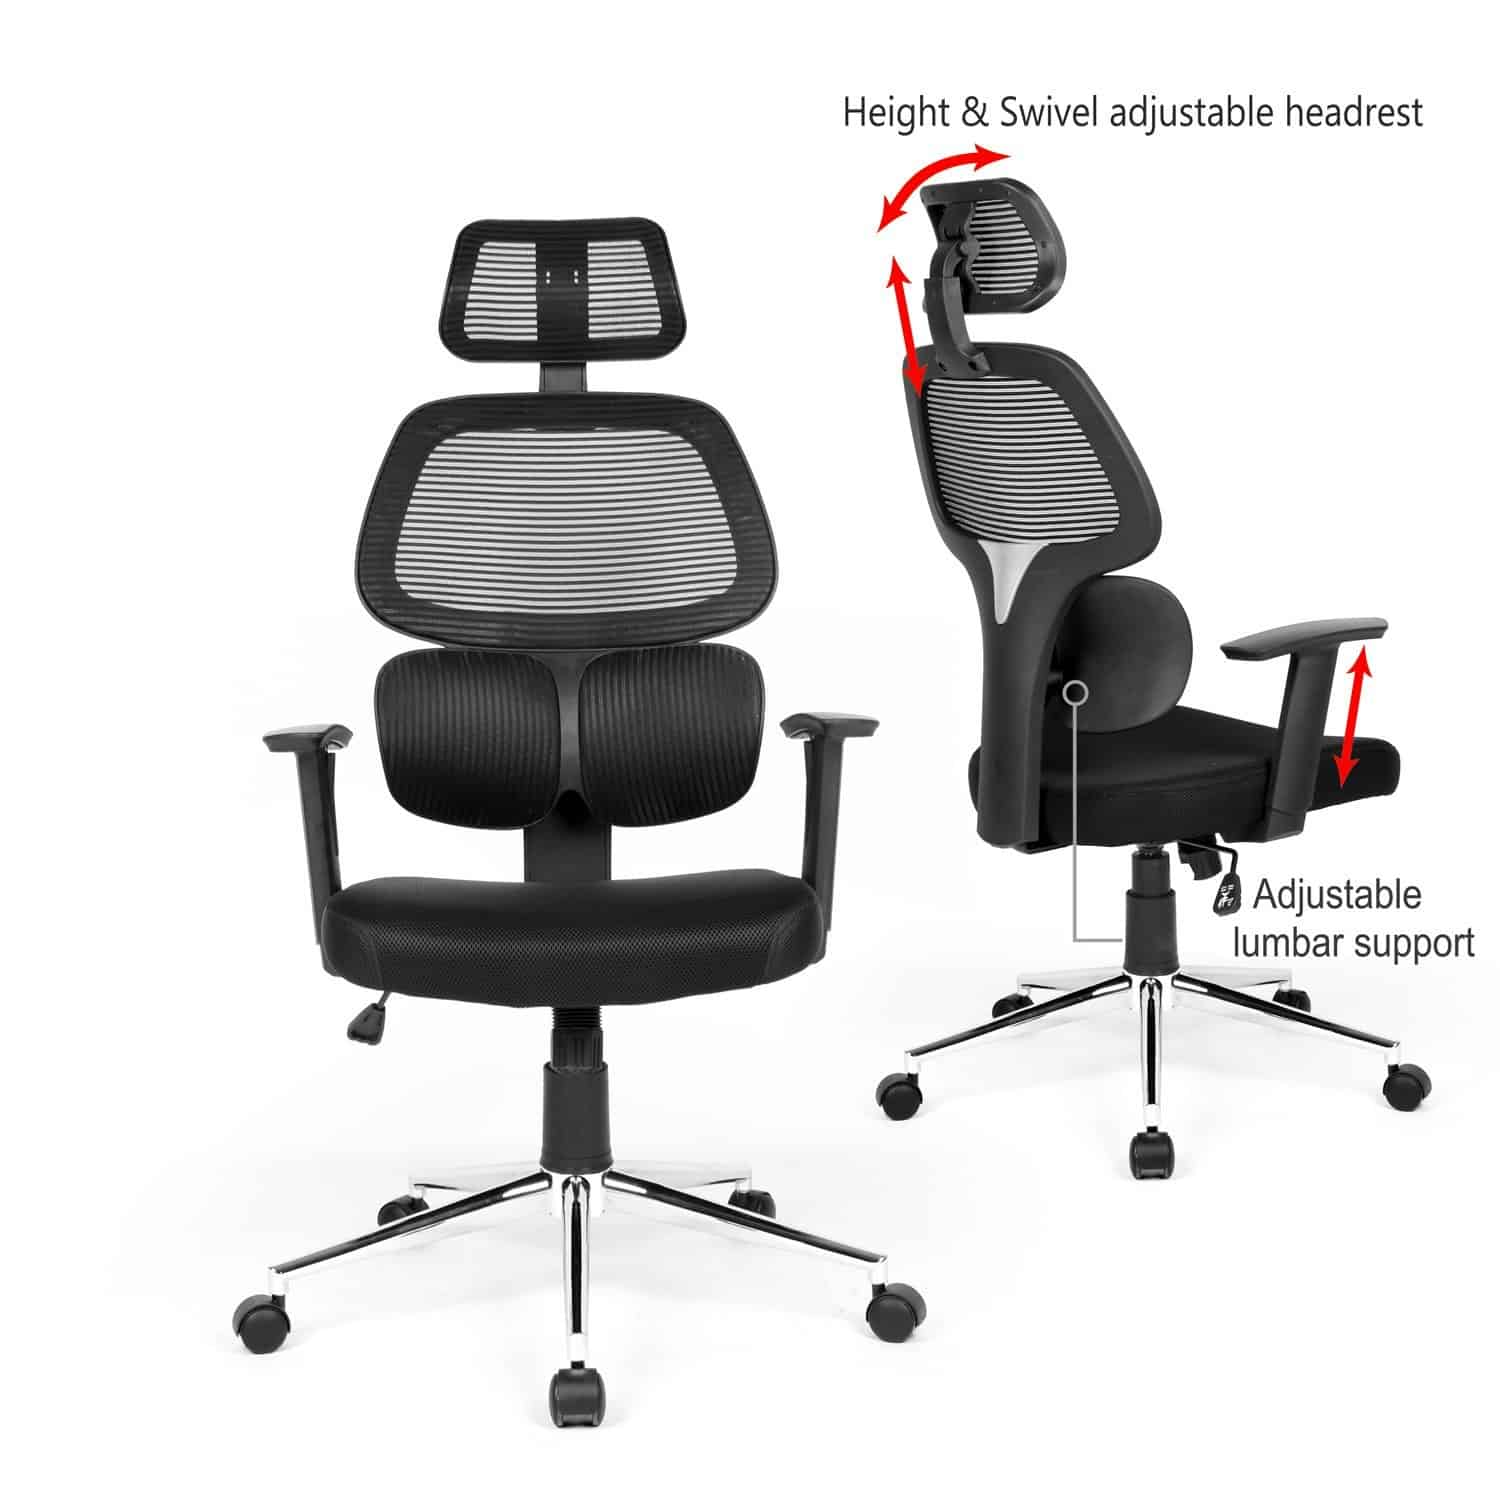 Lower Back Support For Office Chair Whats The Best Ergonomic Chair For Lower Back Pain